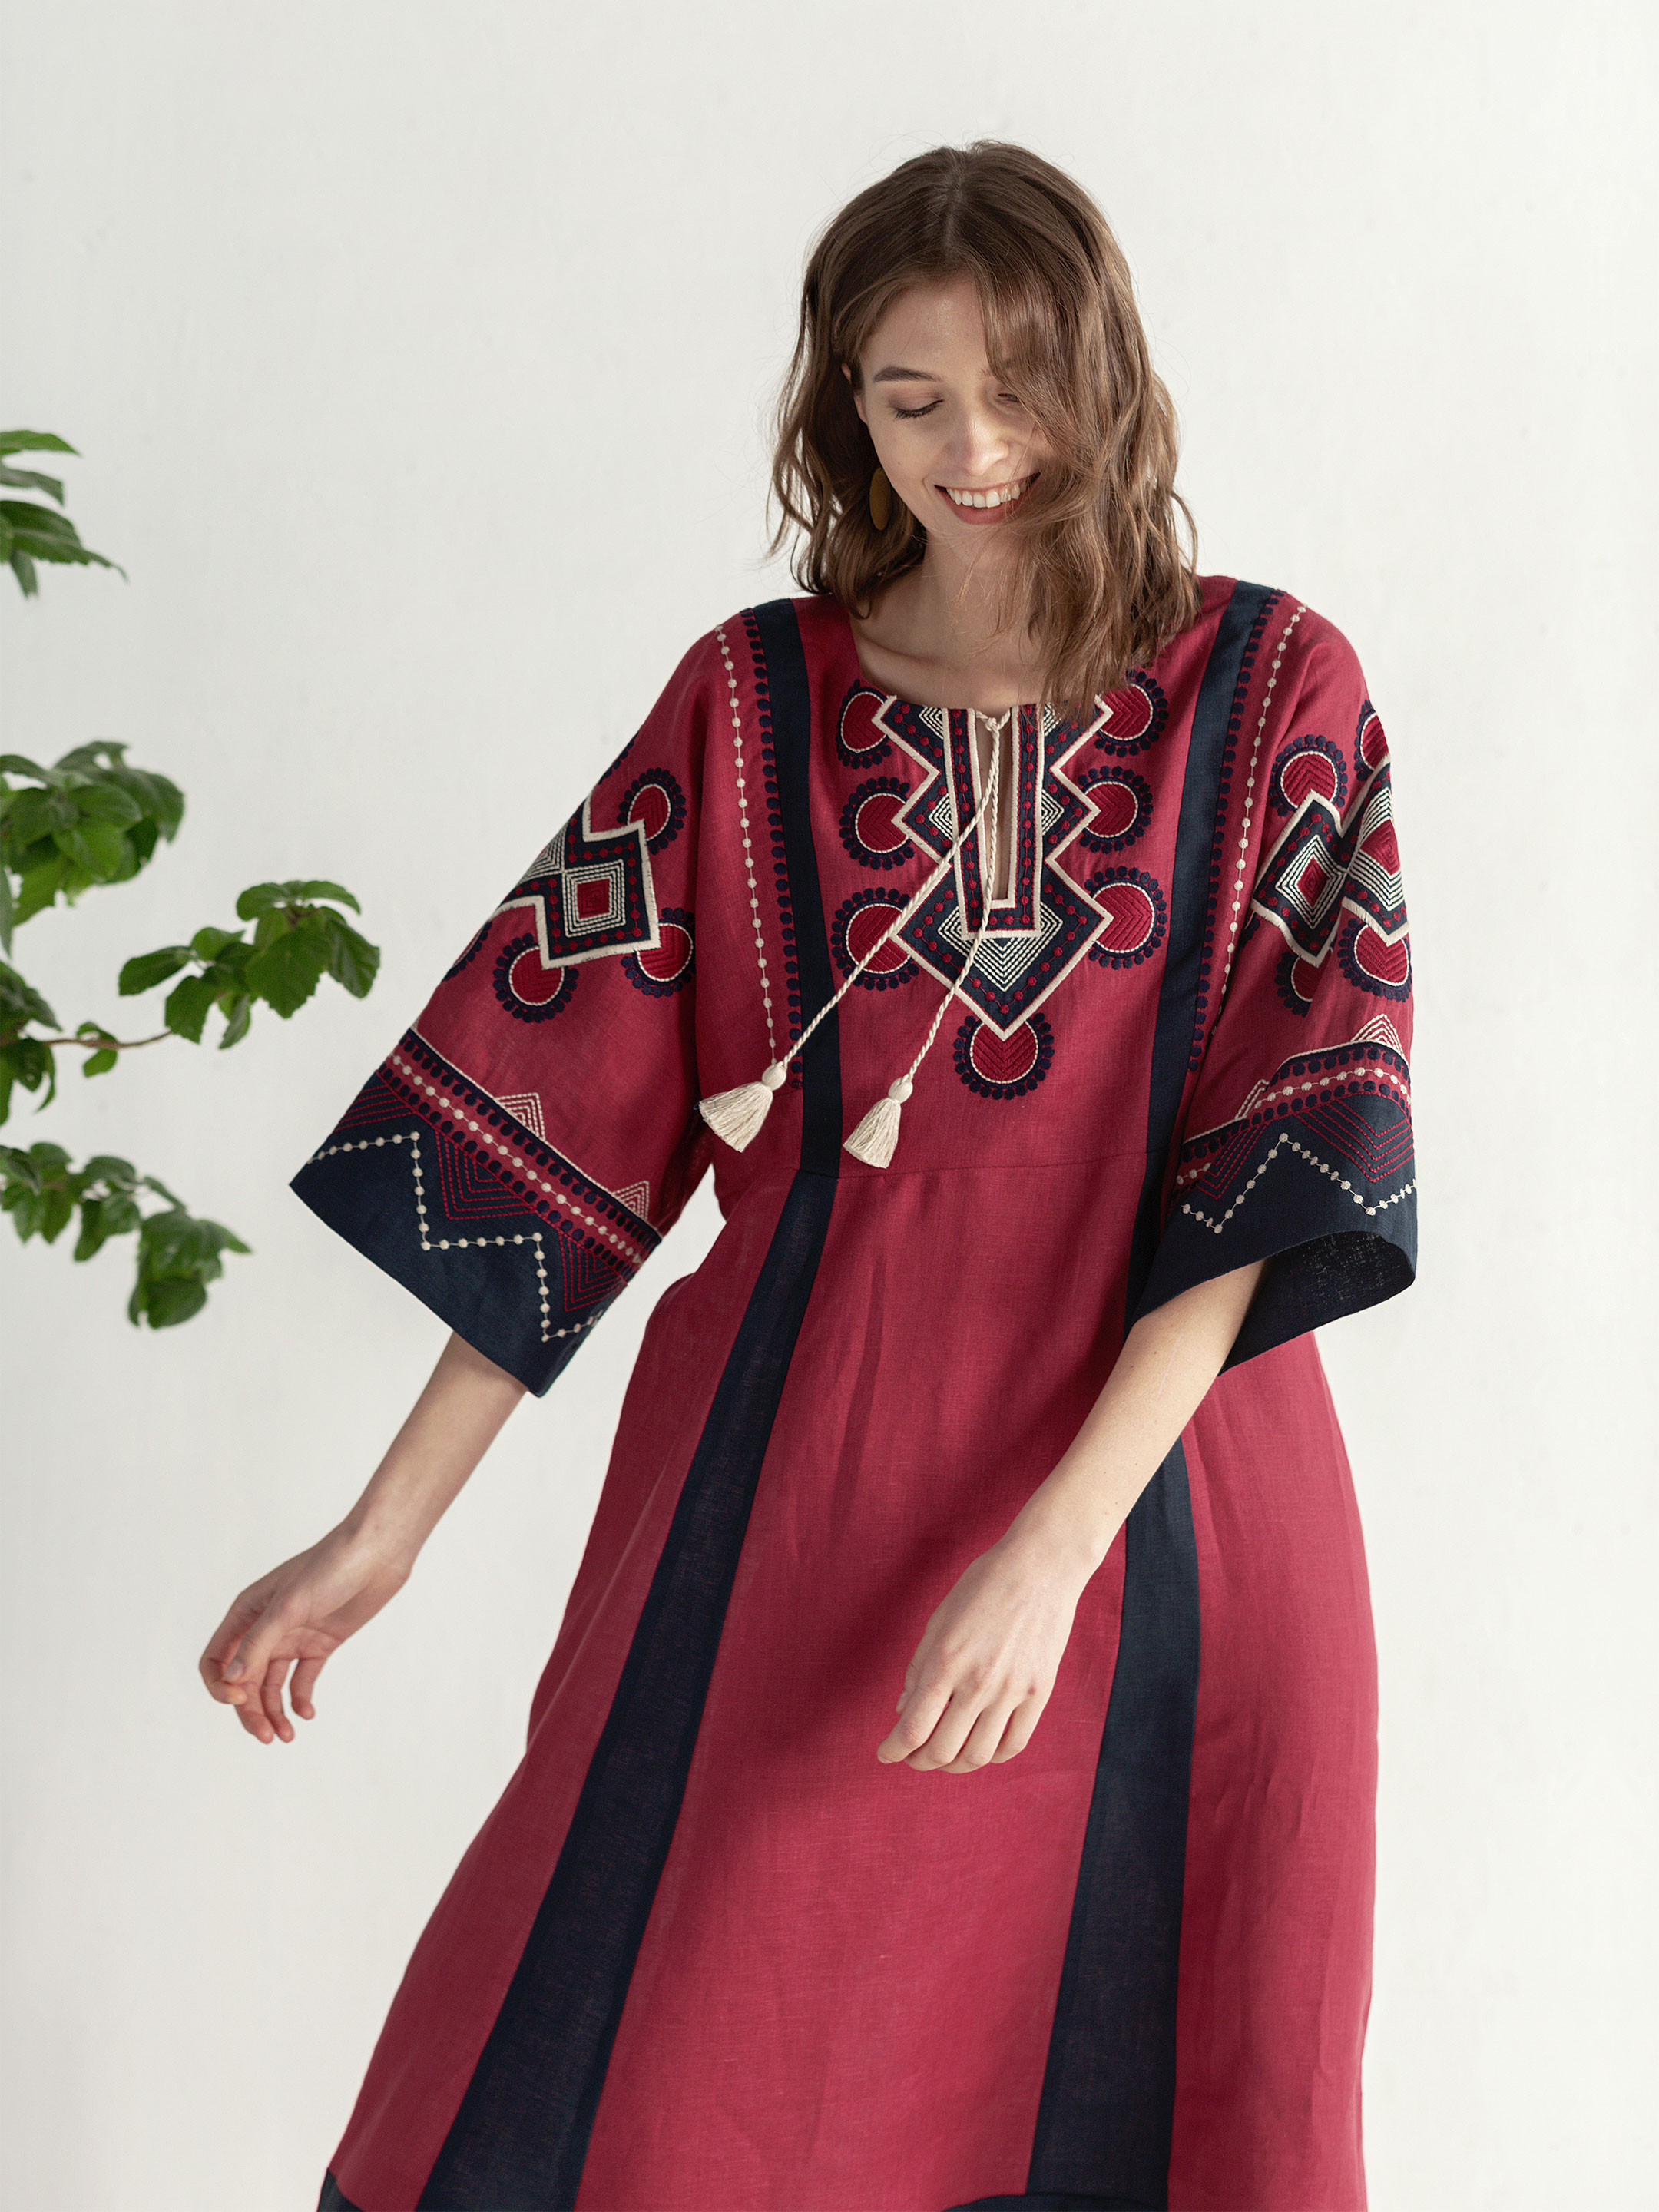 Boho dress of free robe with embroidery Temple2 7